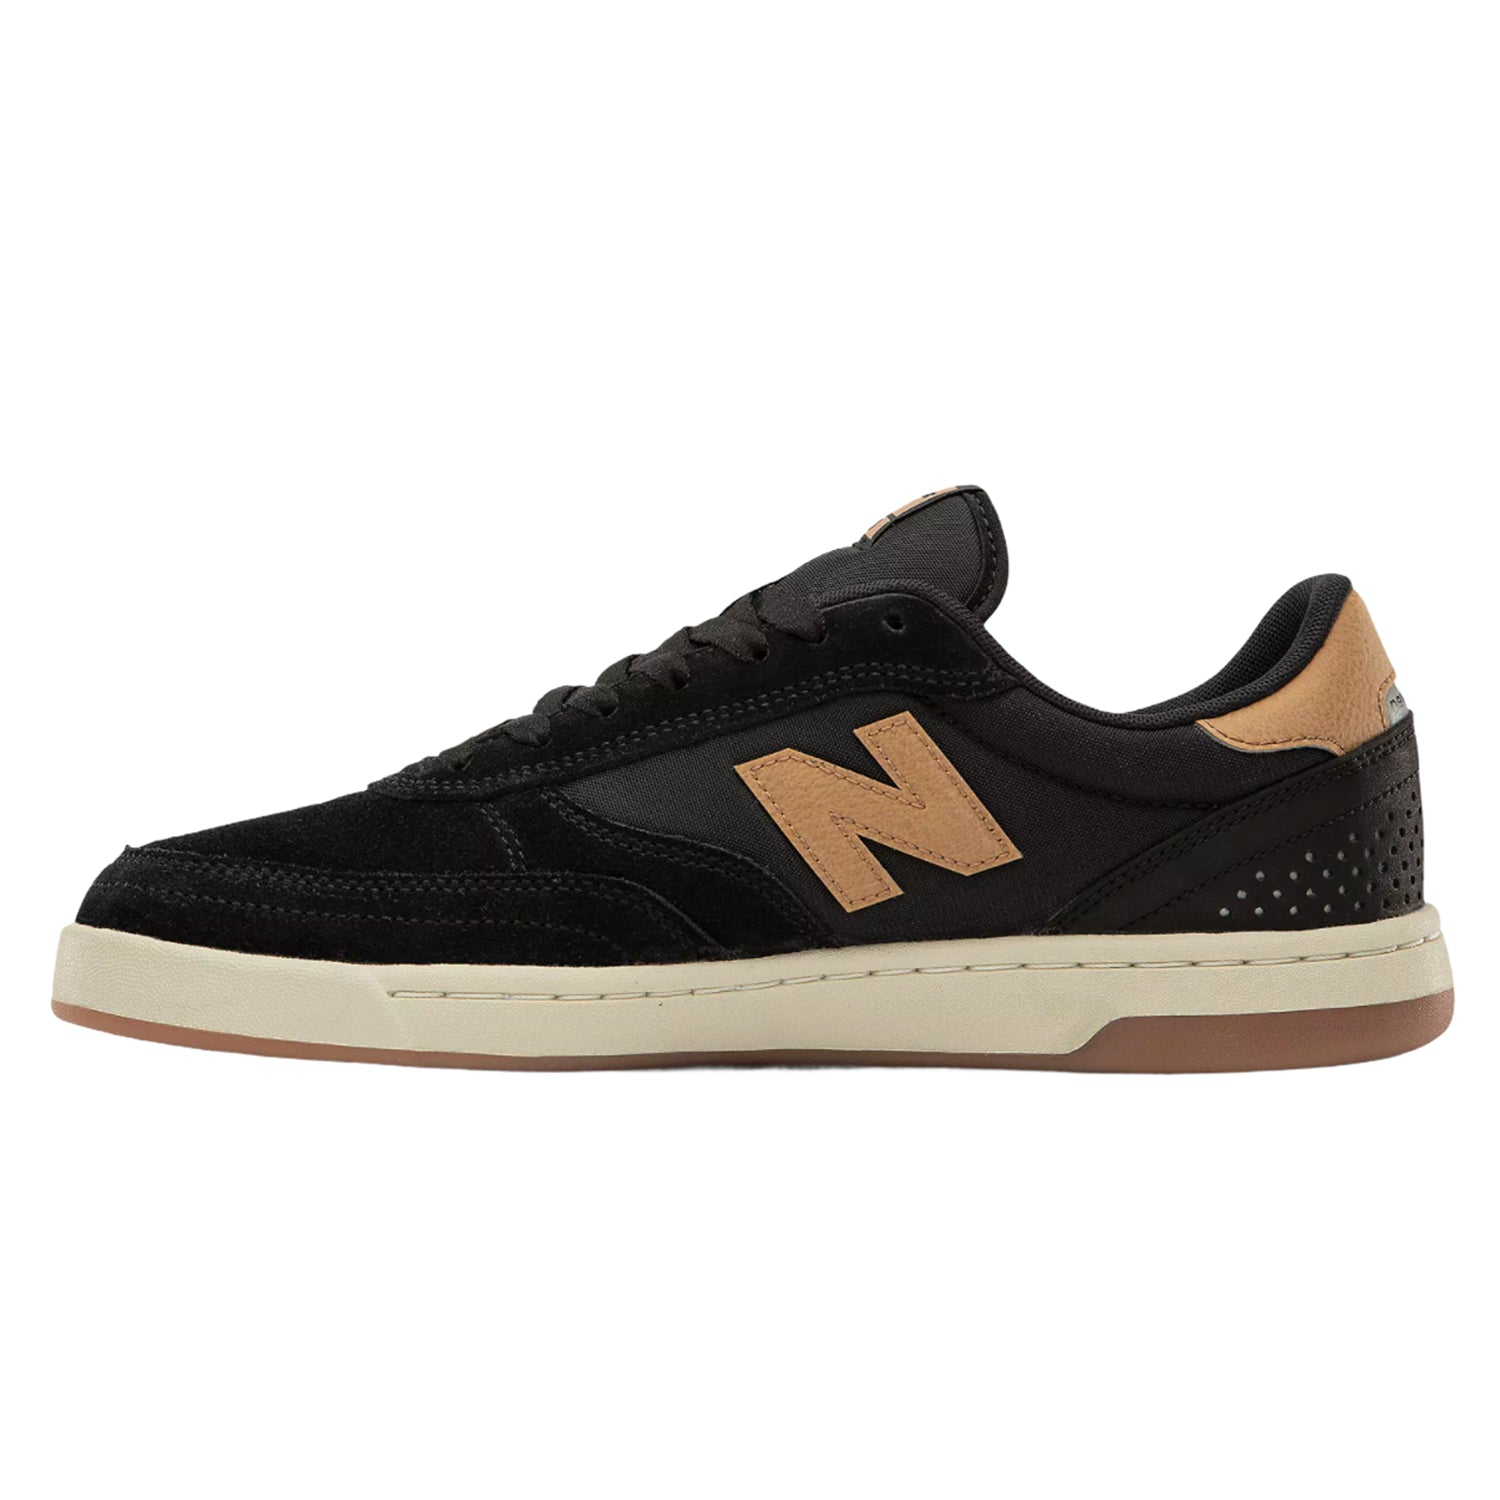 New Balance Numeric NM 440 Black/Brown